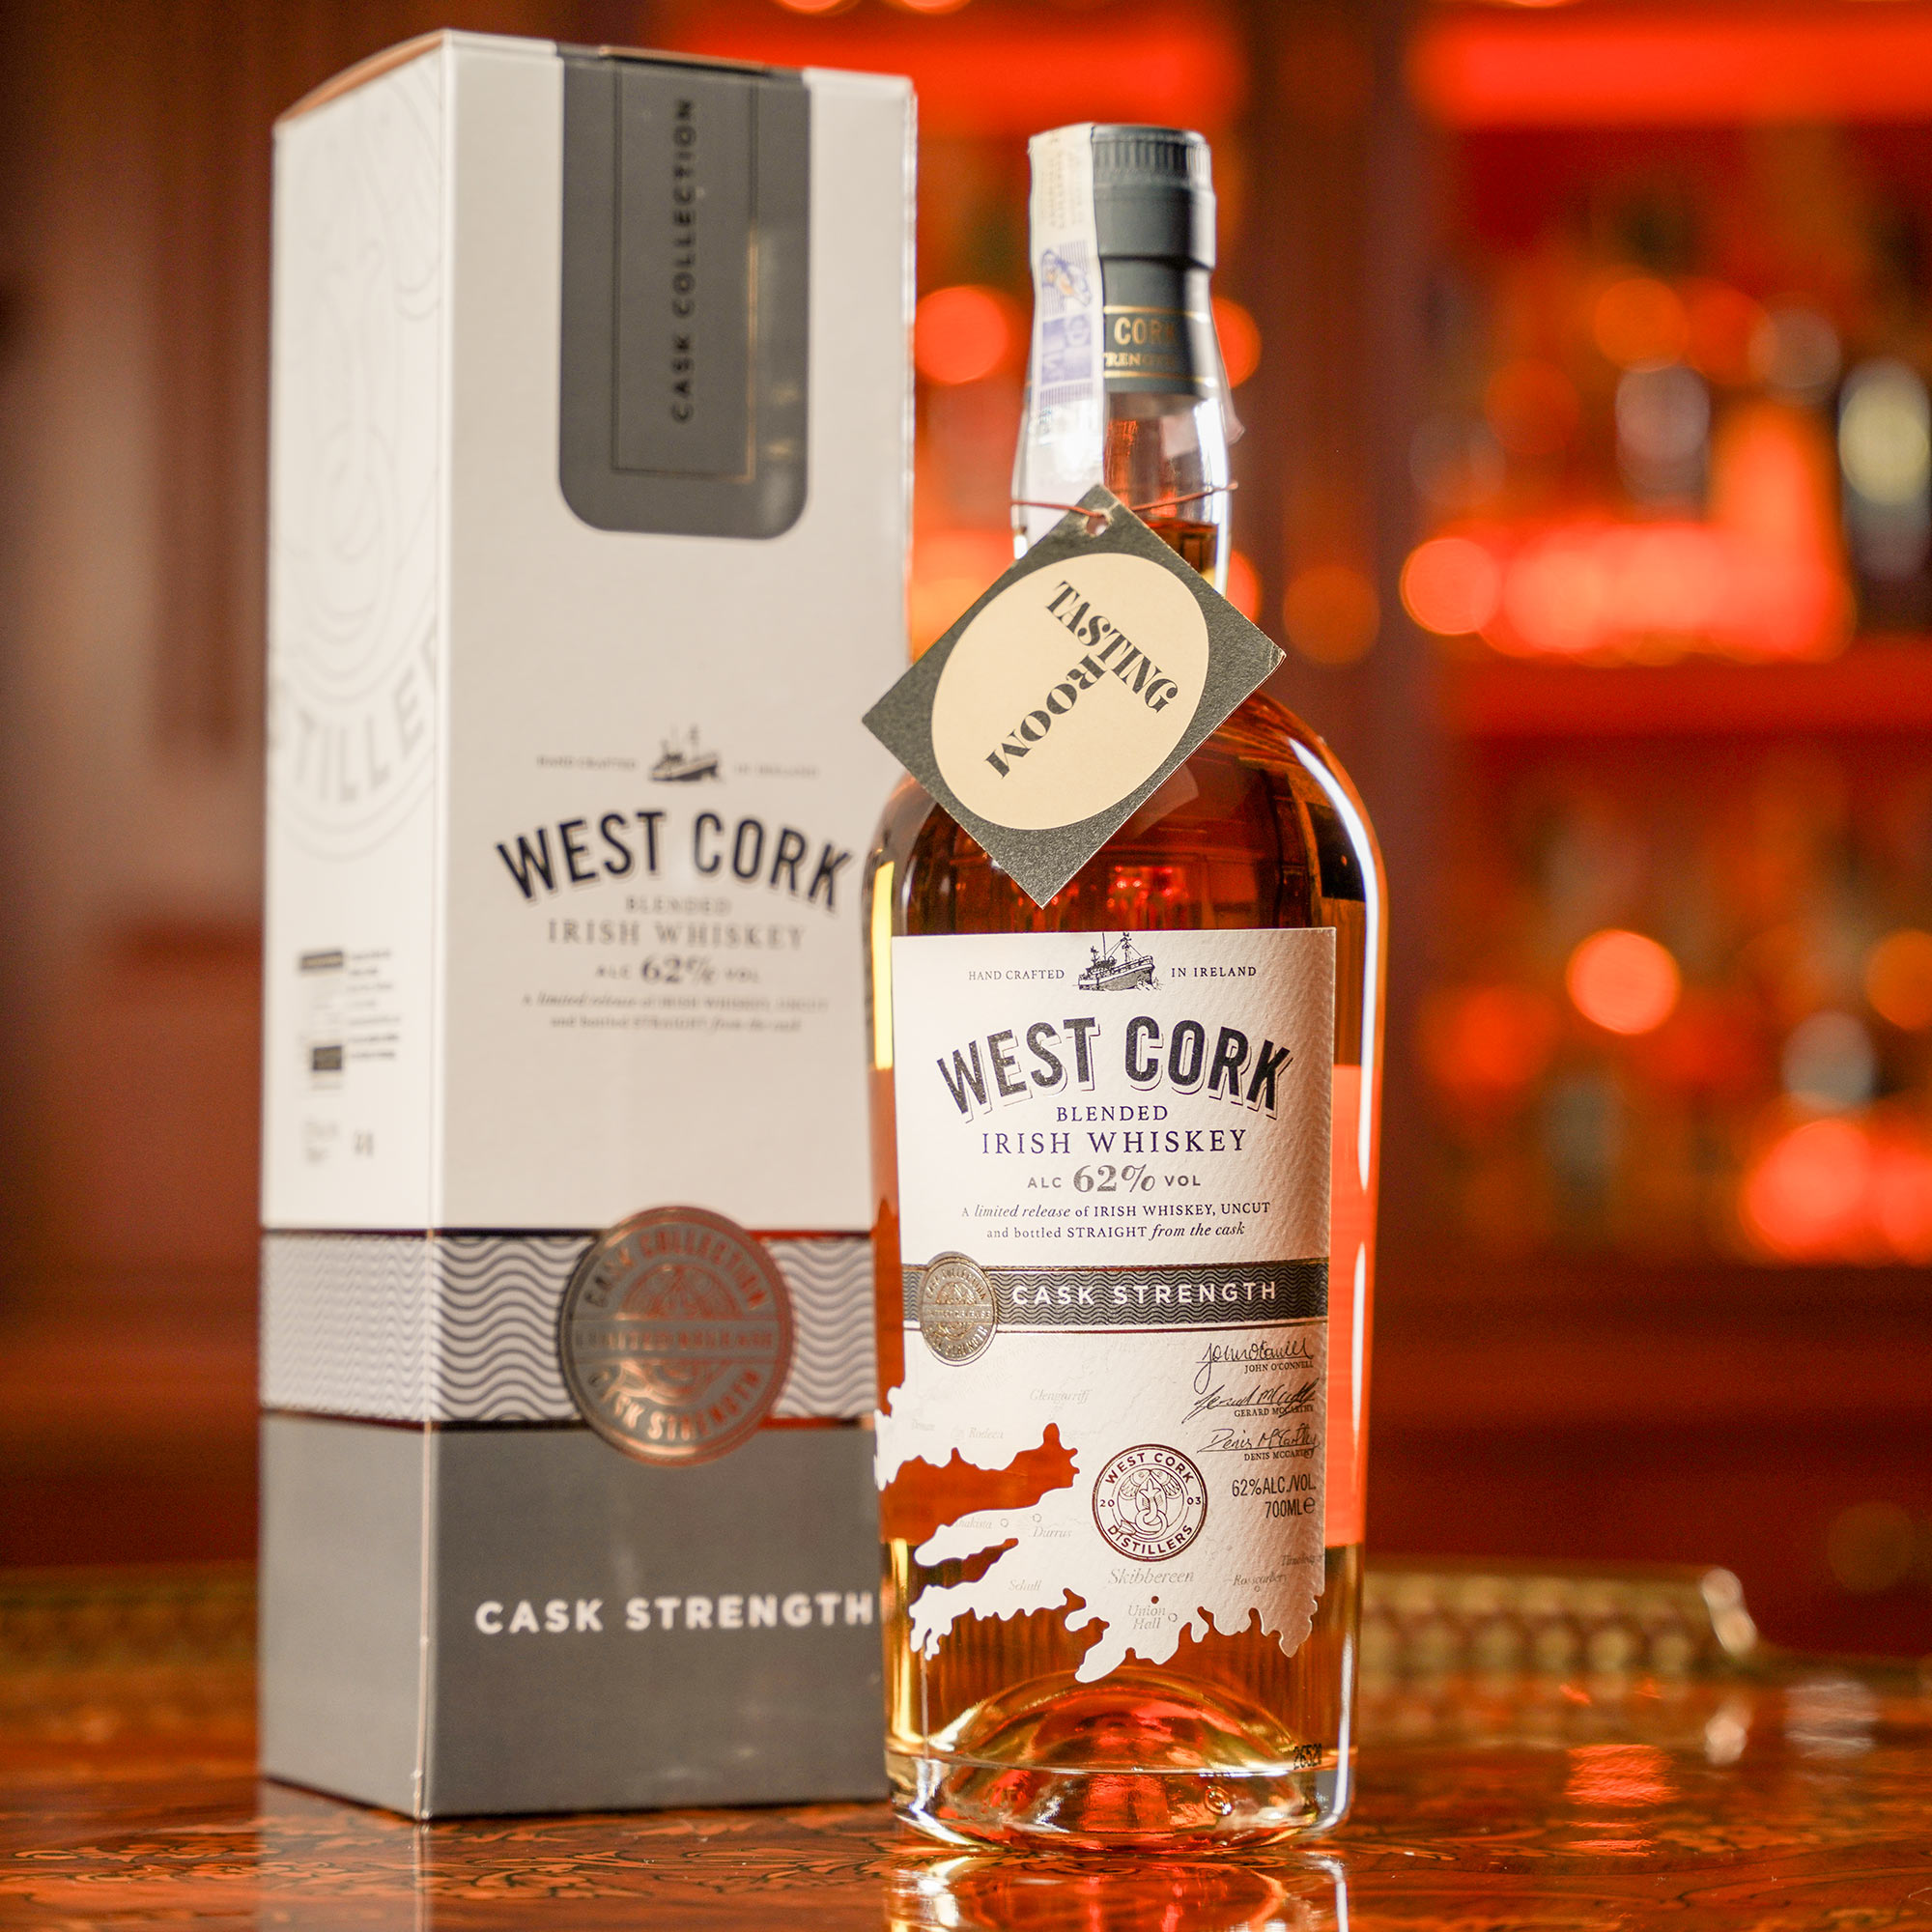 West Cork Cask Strength /Уест Корк Каск Стренгт